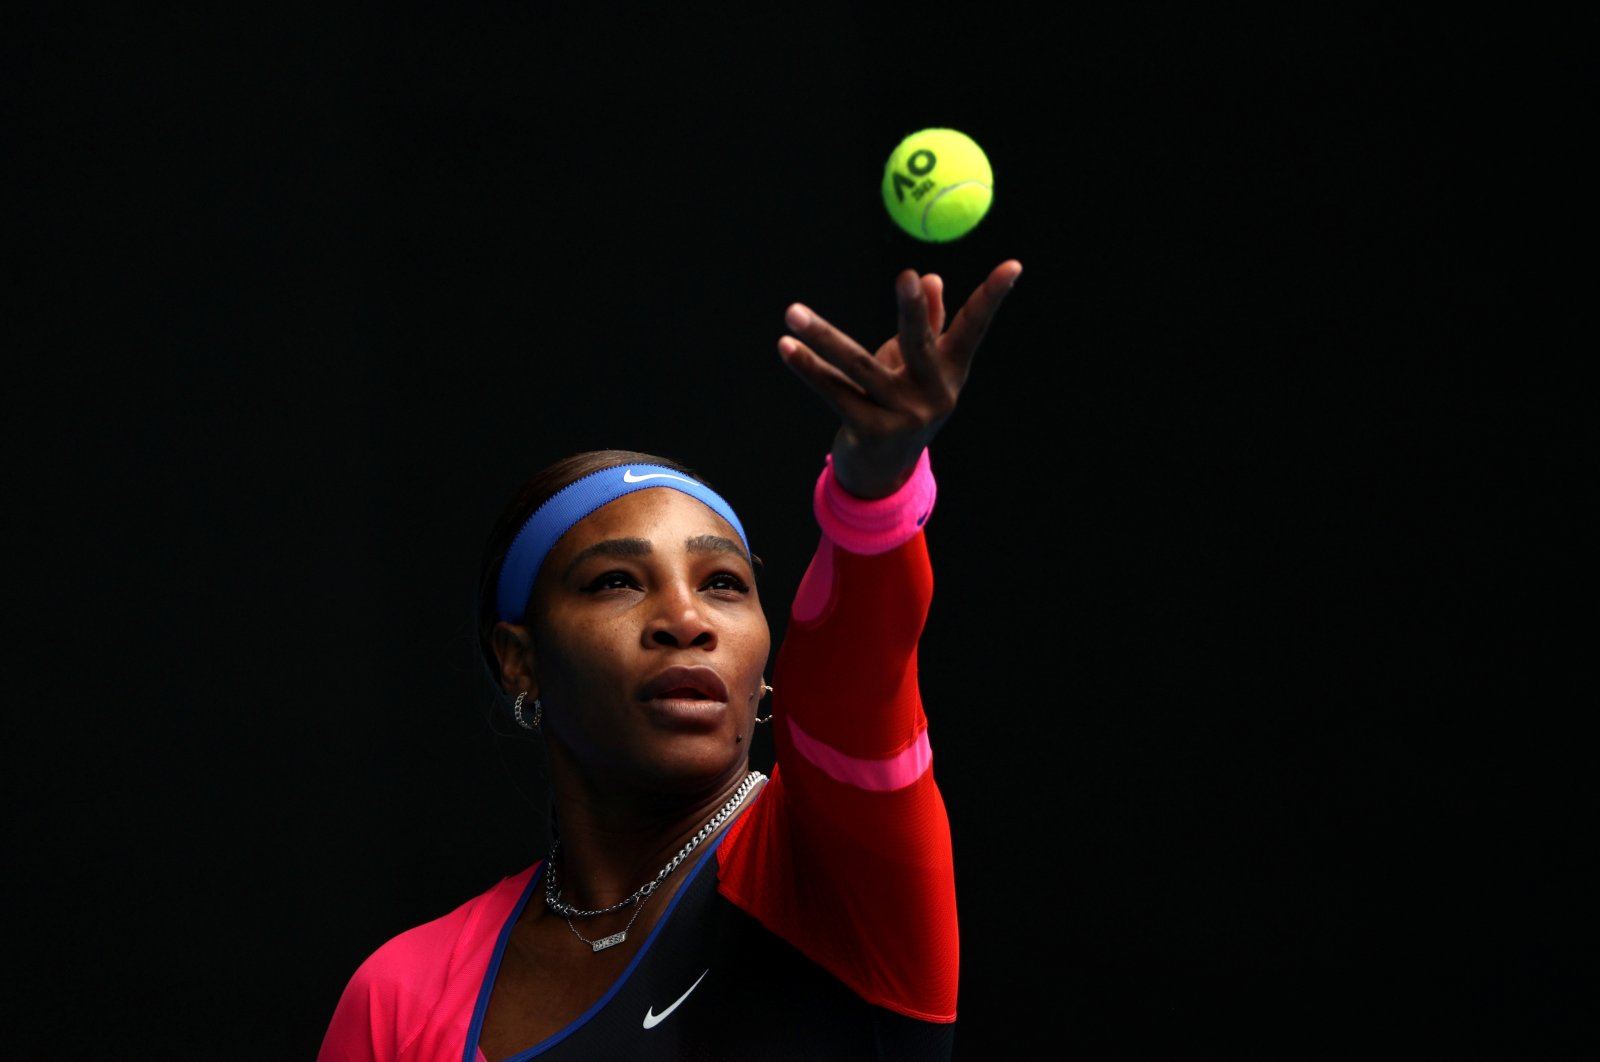 Serena Williams in action during her first-round Australian Open match against Germany's Laura Siegemund at Melbourne Park, Melbourne, Australia, Feb. 8, 2021. (Reuters Photo)